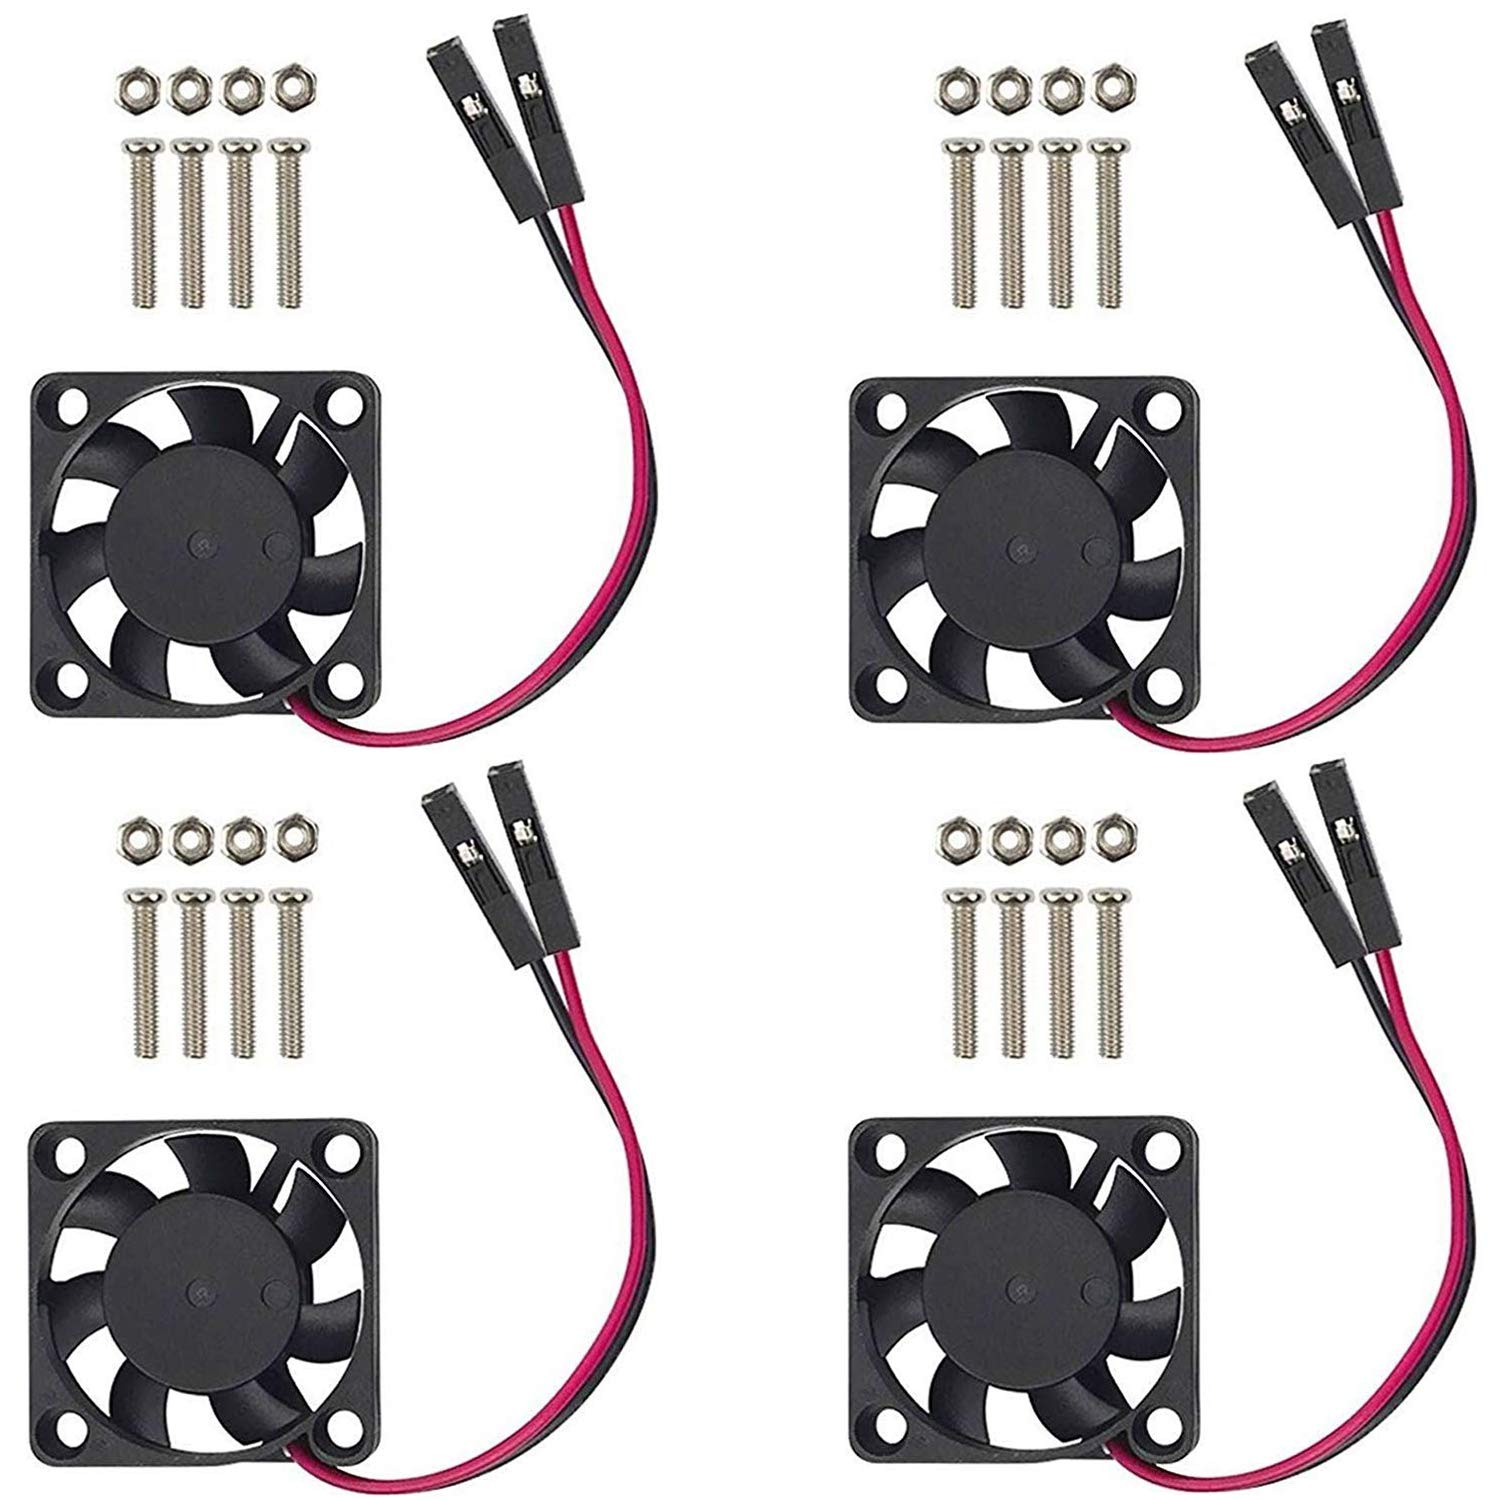 Aokin Raspberry Pi Fan, 4Pcs Raspberry Pi Cooling Fan Brushless CPU Cooling Fan Heatsink Cooler Radiator Connector Separating One-to-Two Interface 3.3V 5V for Raspberry Pi4 Pi3 B+, Pi 3, Pi 2, Pi 1 B+